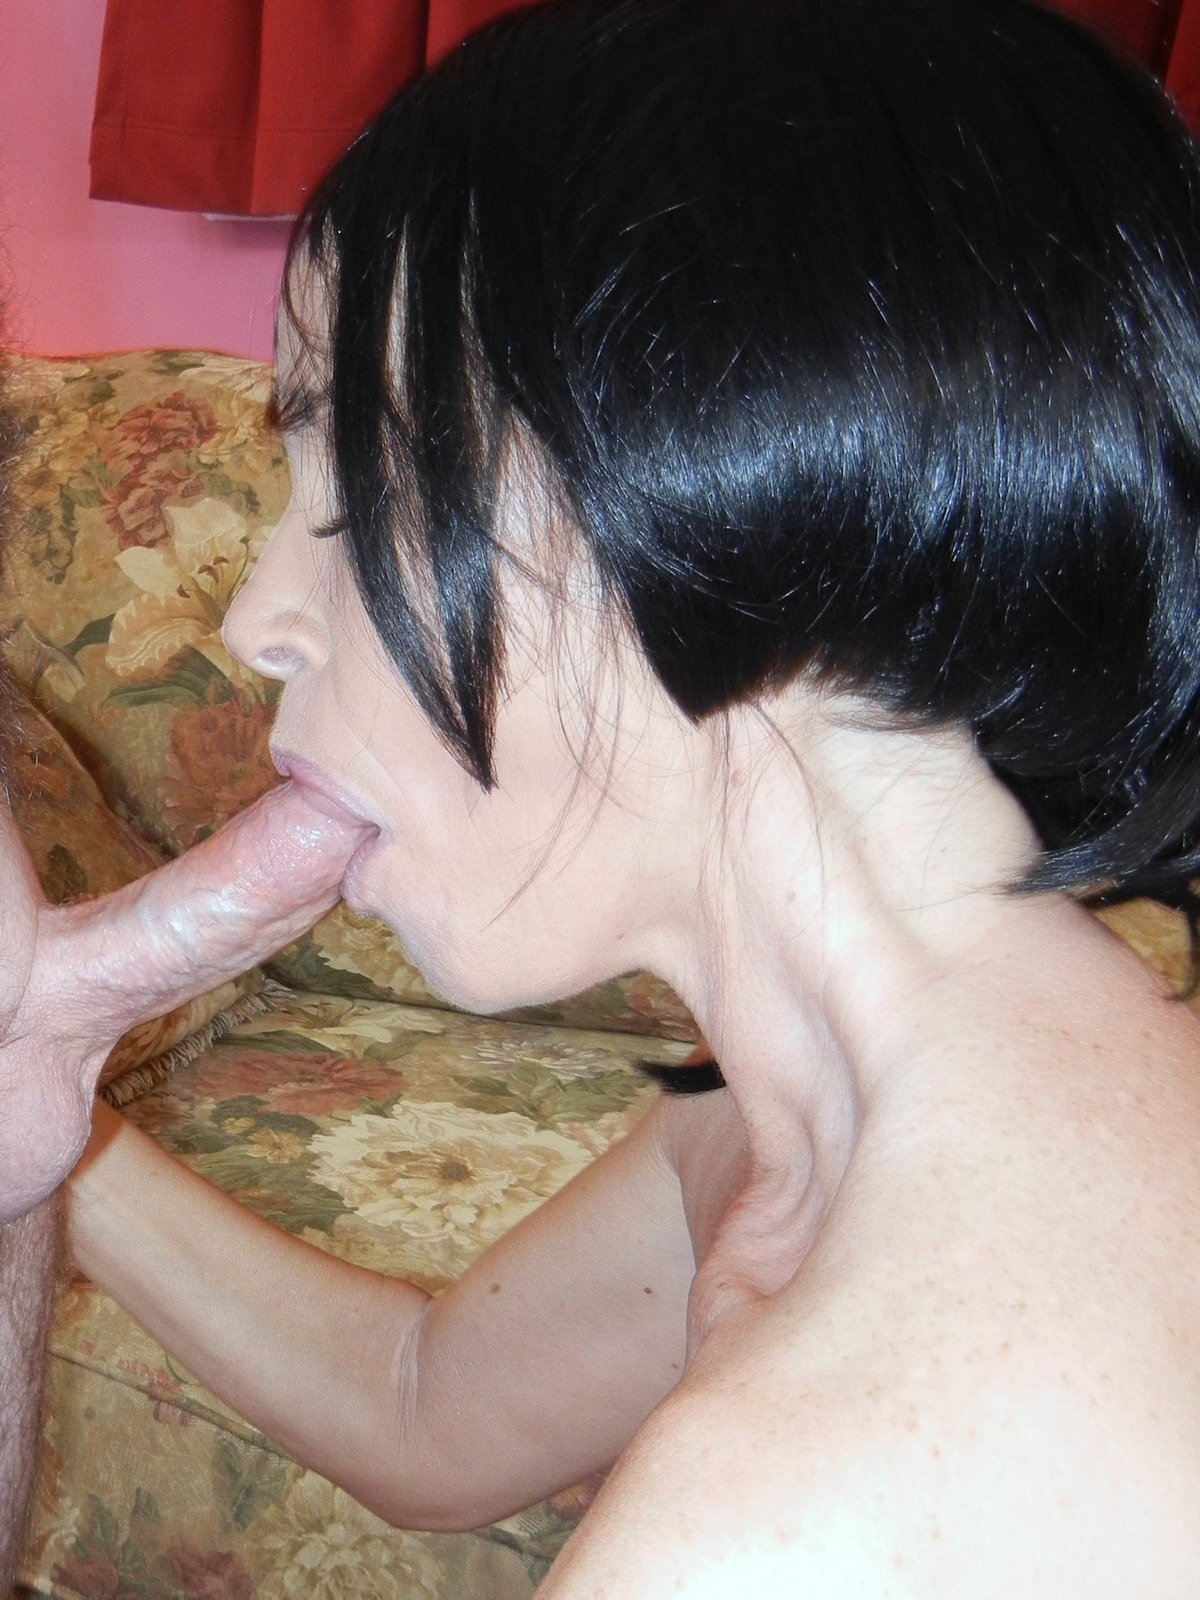 Gay live chat xxx Naughty girlfriend tanata gets a cock in her asshole and sweet pussy